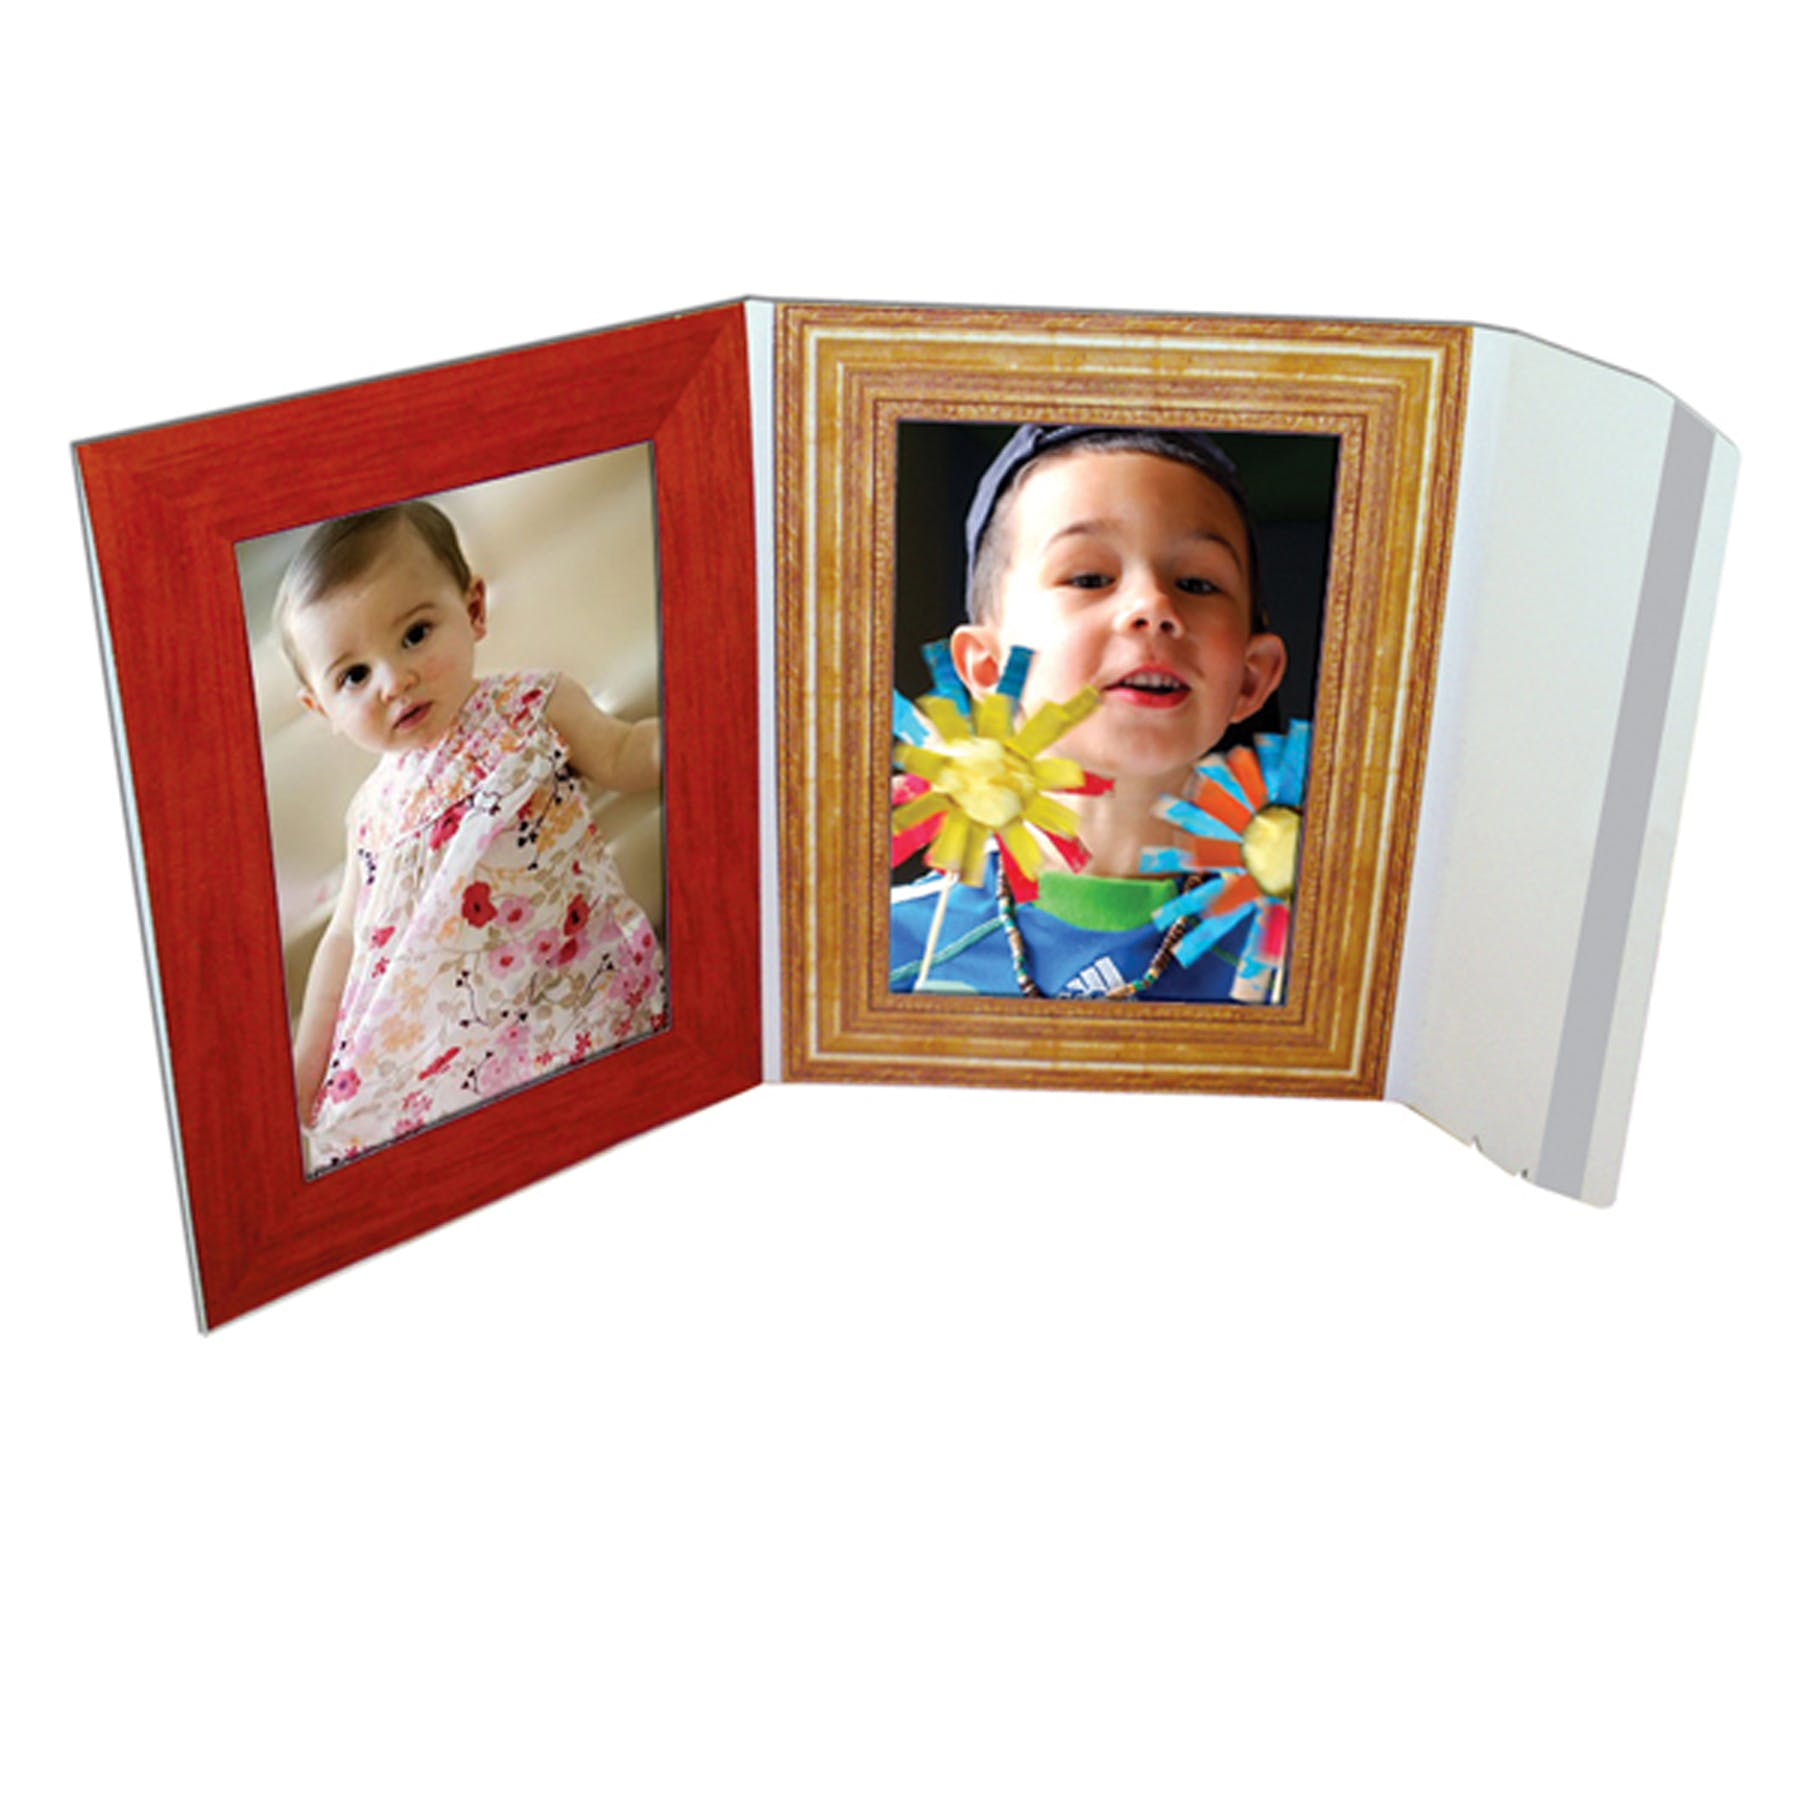 Large 2 Photo Mailer (Item # QGGKM-IAZVH) Envelope sold by InkEasy